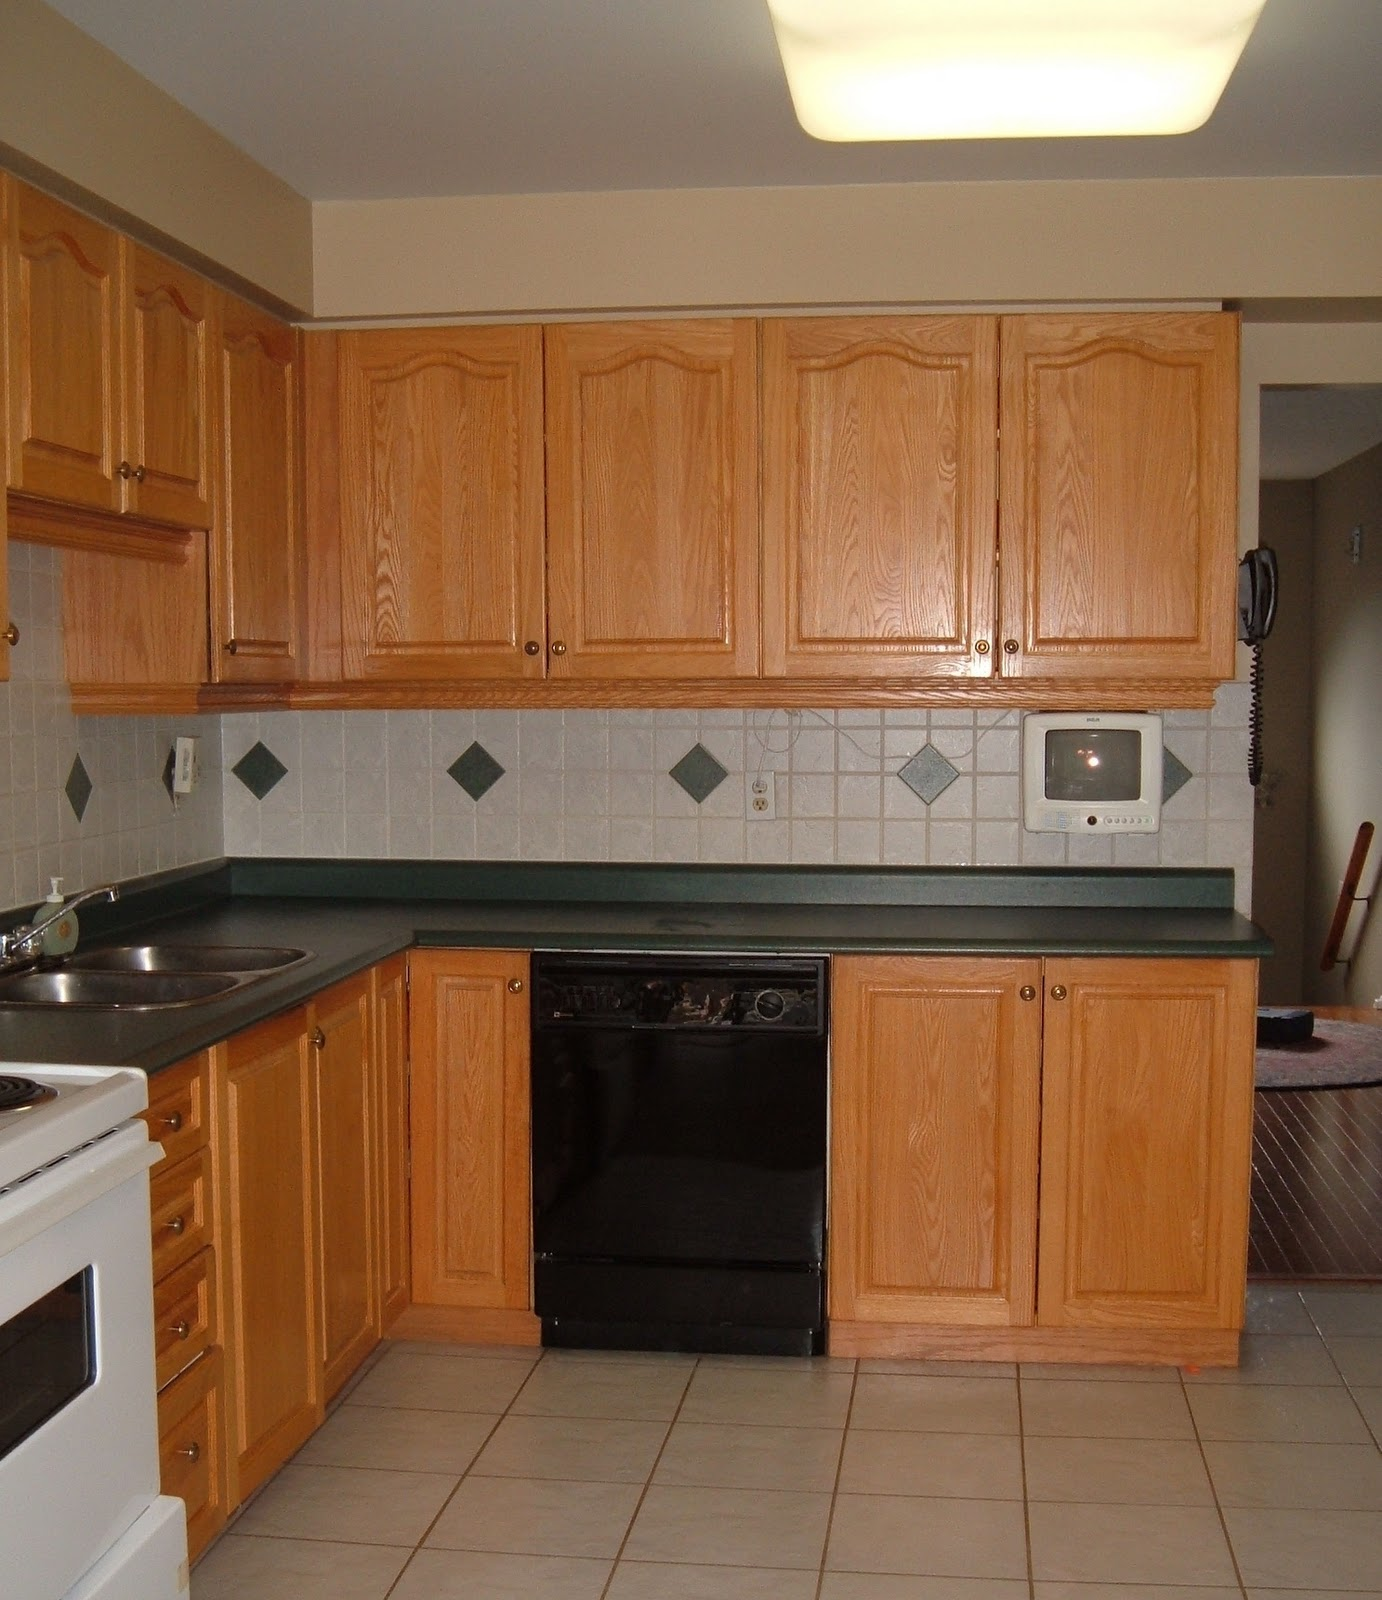 kitchen before after out with oak kitchen cabinets wholesale Kitchen Before After Out With The Oak